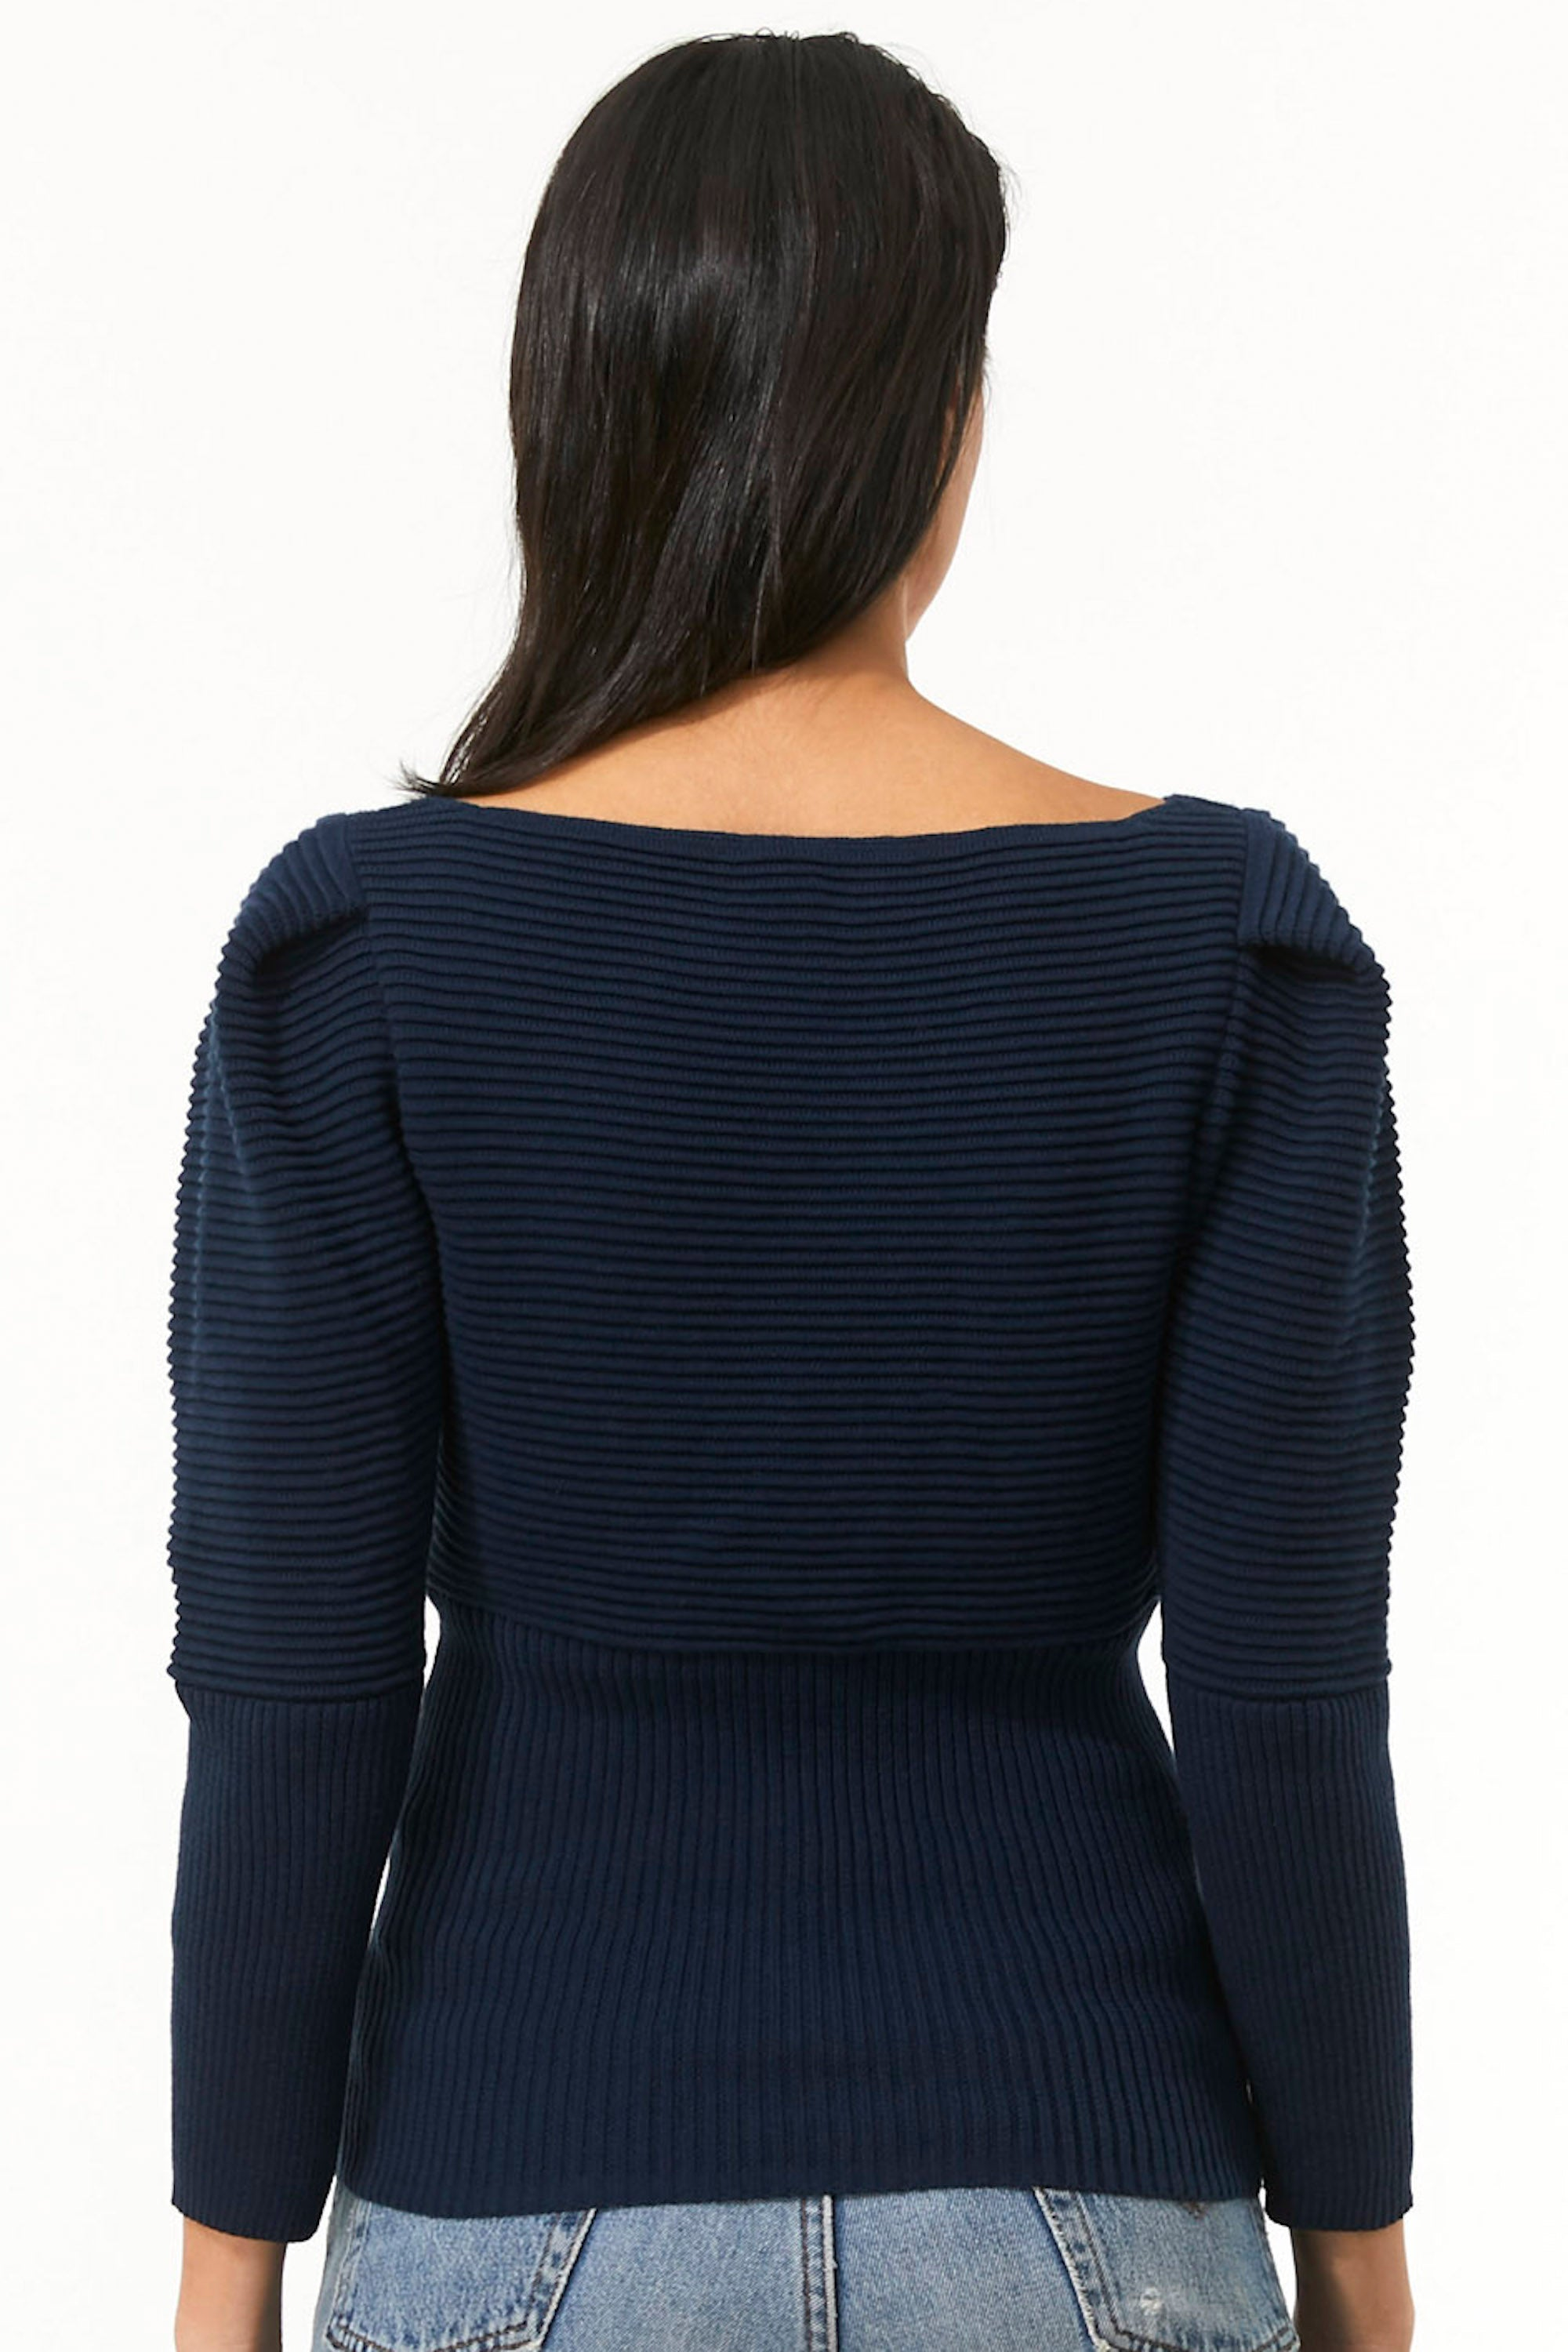 Mara Hoffman Indigo Helena Sweater in organic cotton (back)